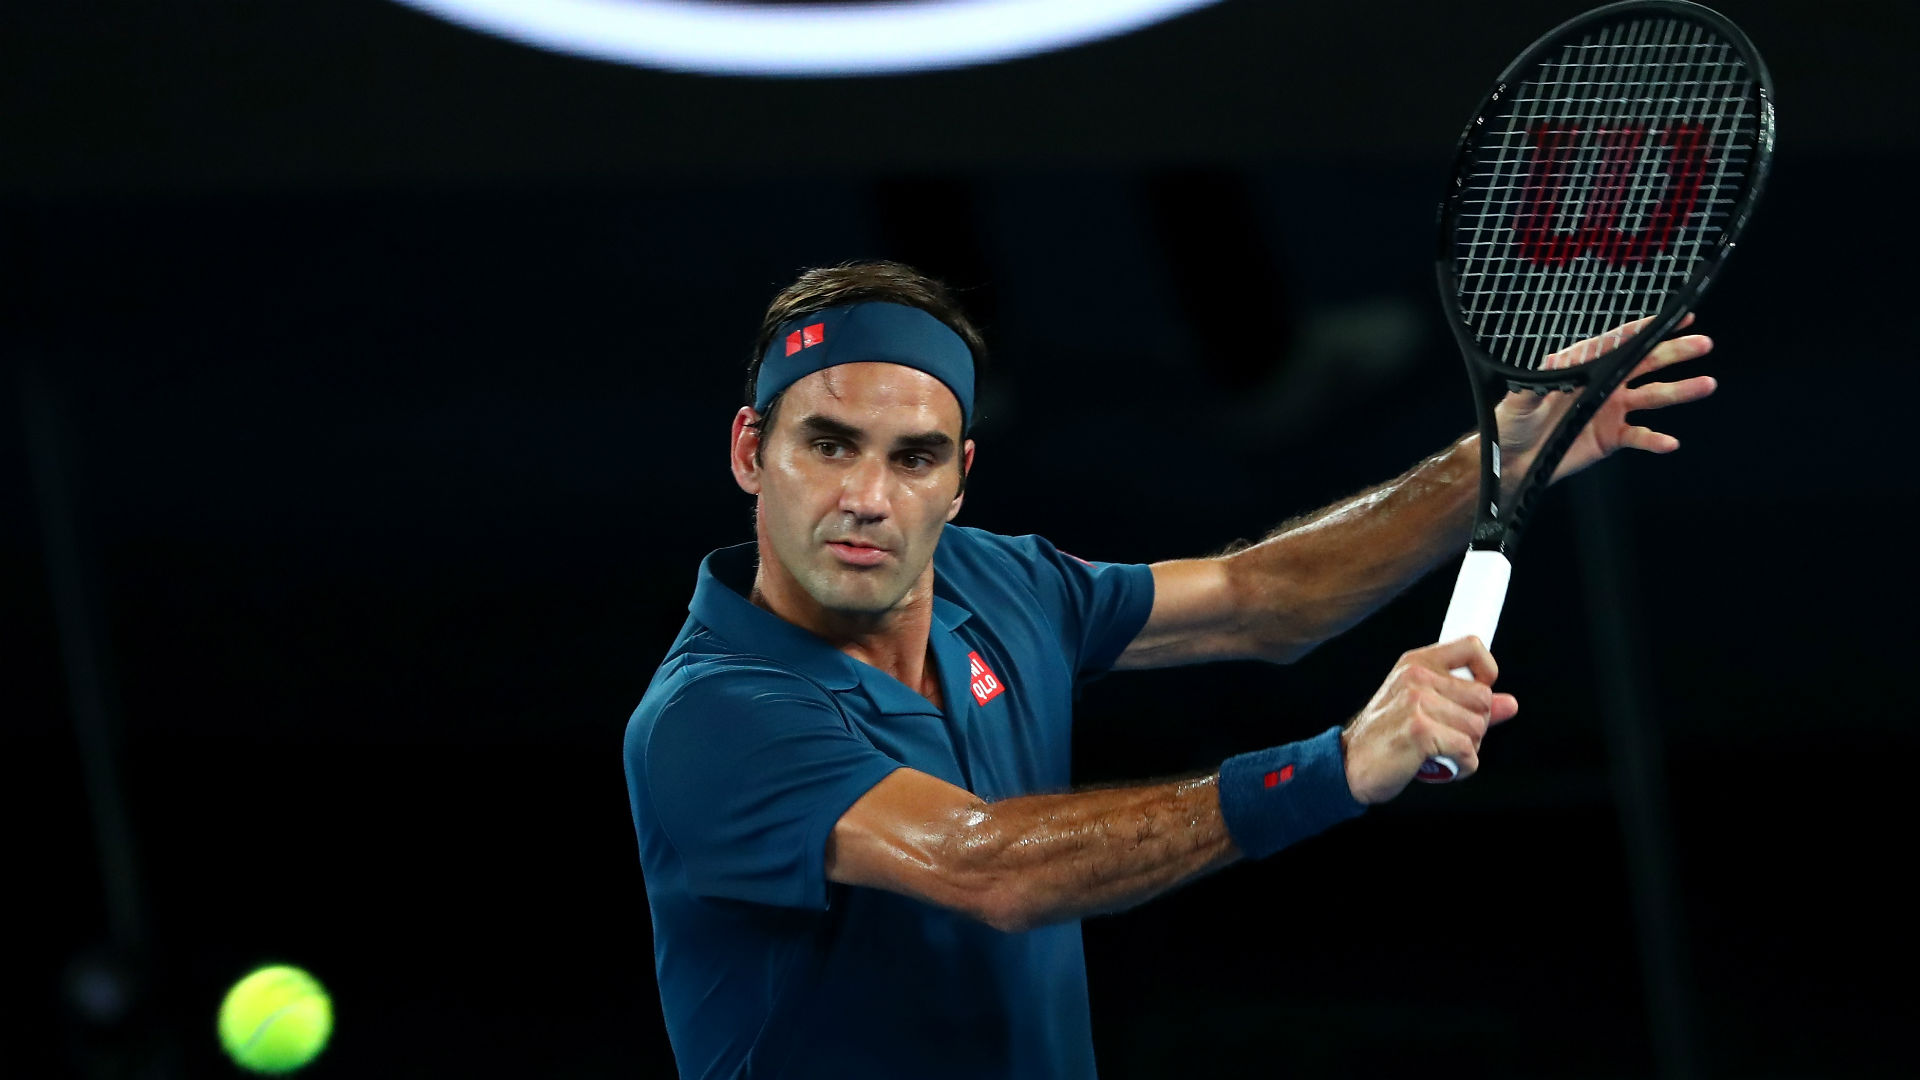 Fabulous Federer races past Istomin